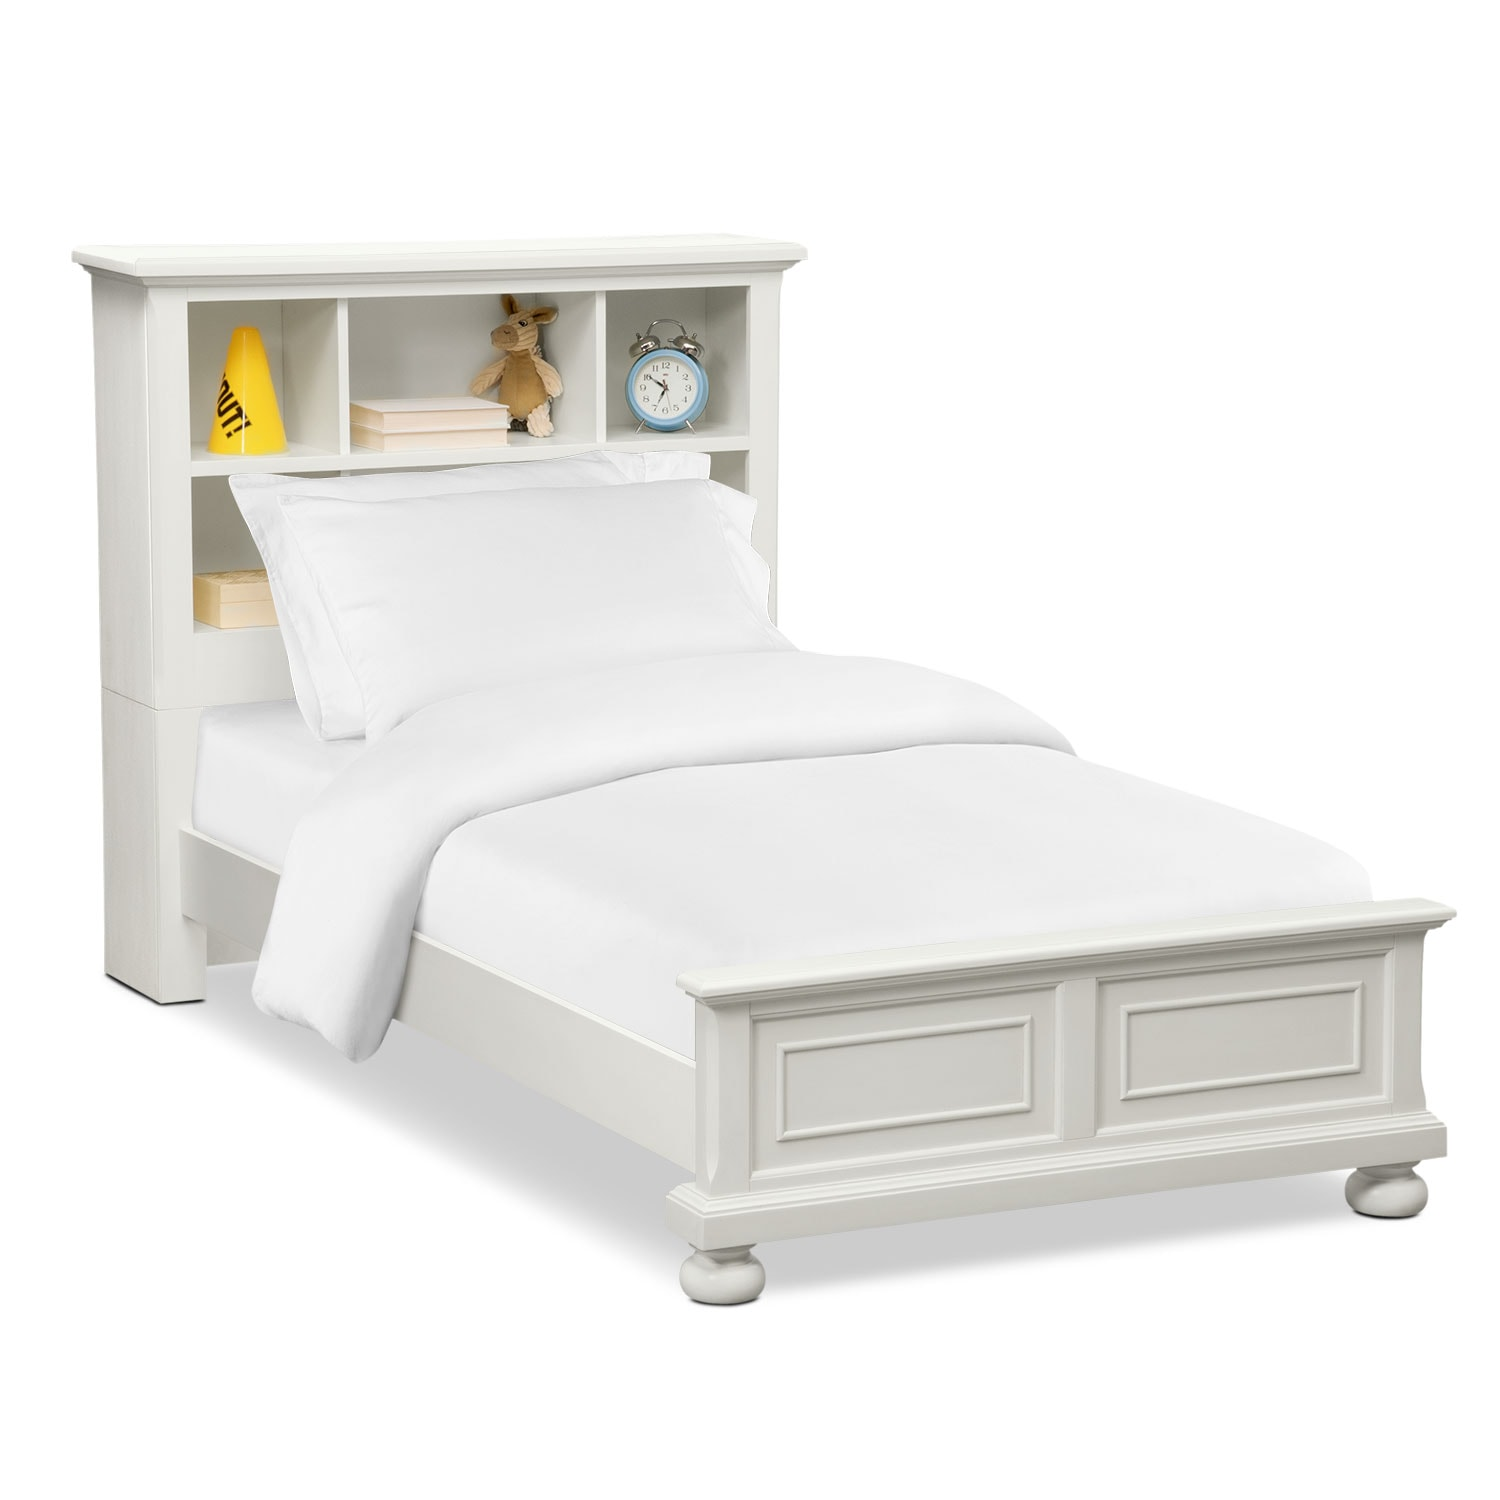 Hanover Youth Twin Bookcase Bed - White